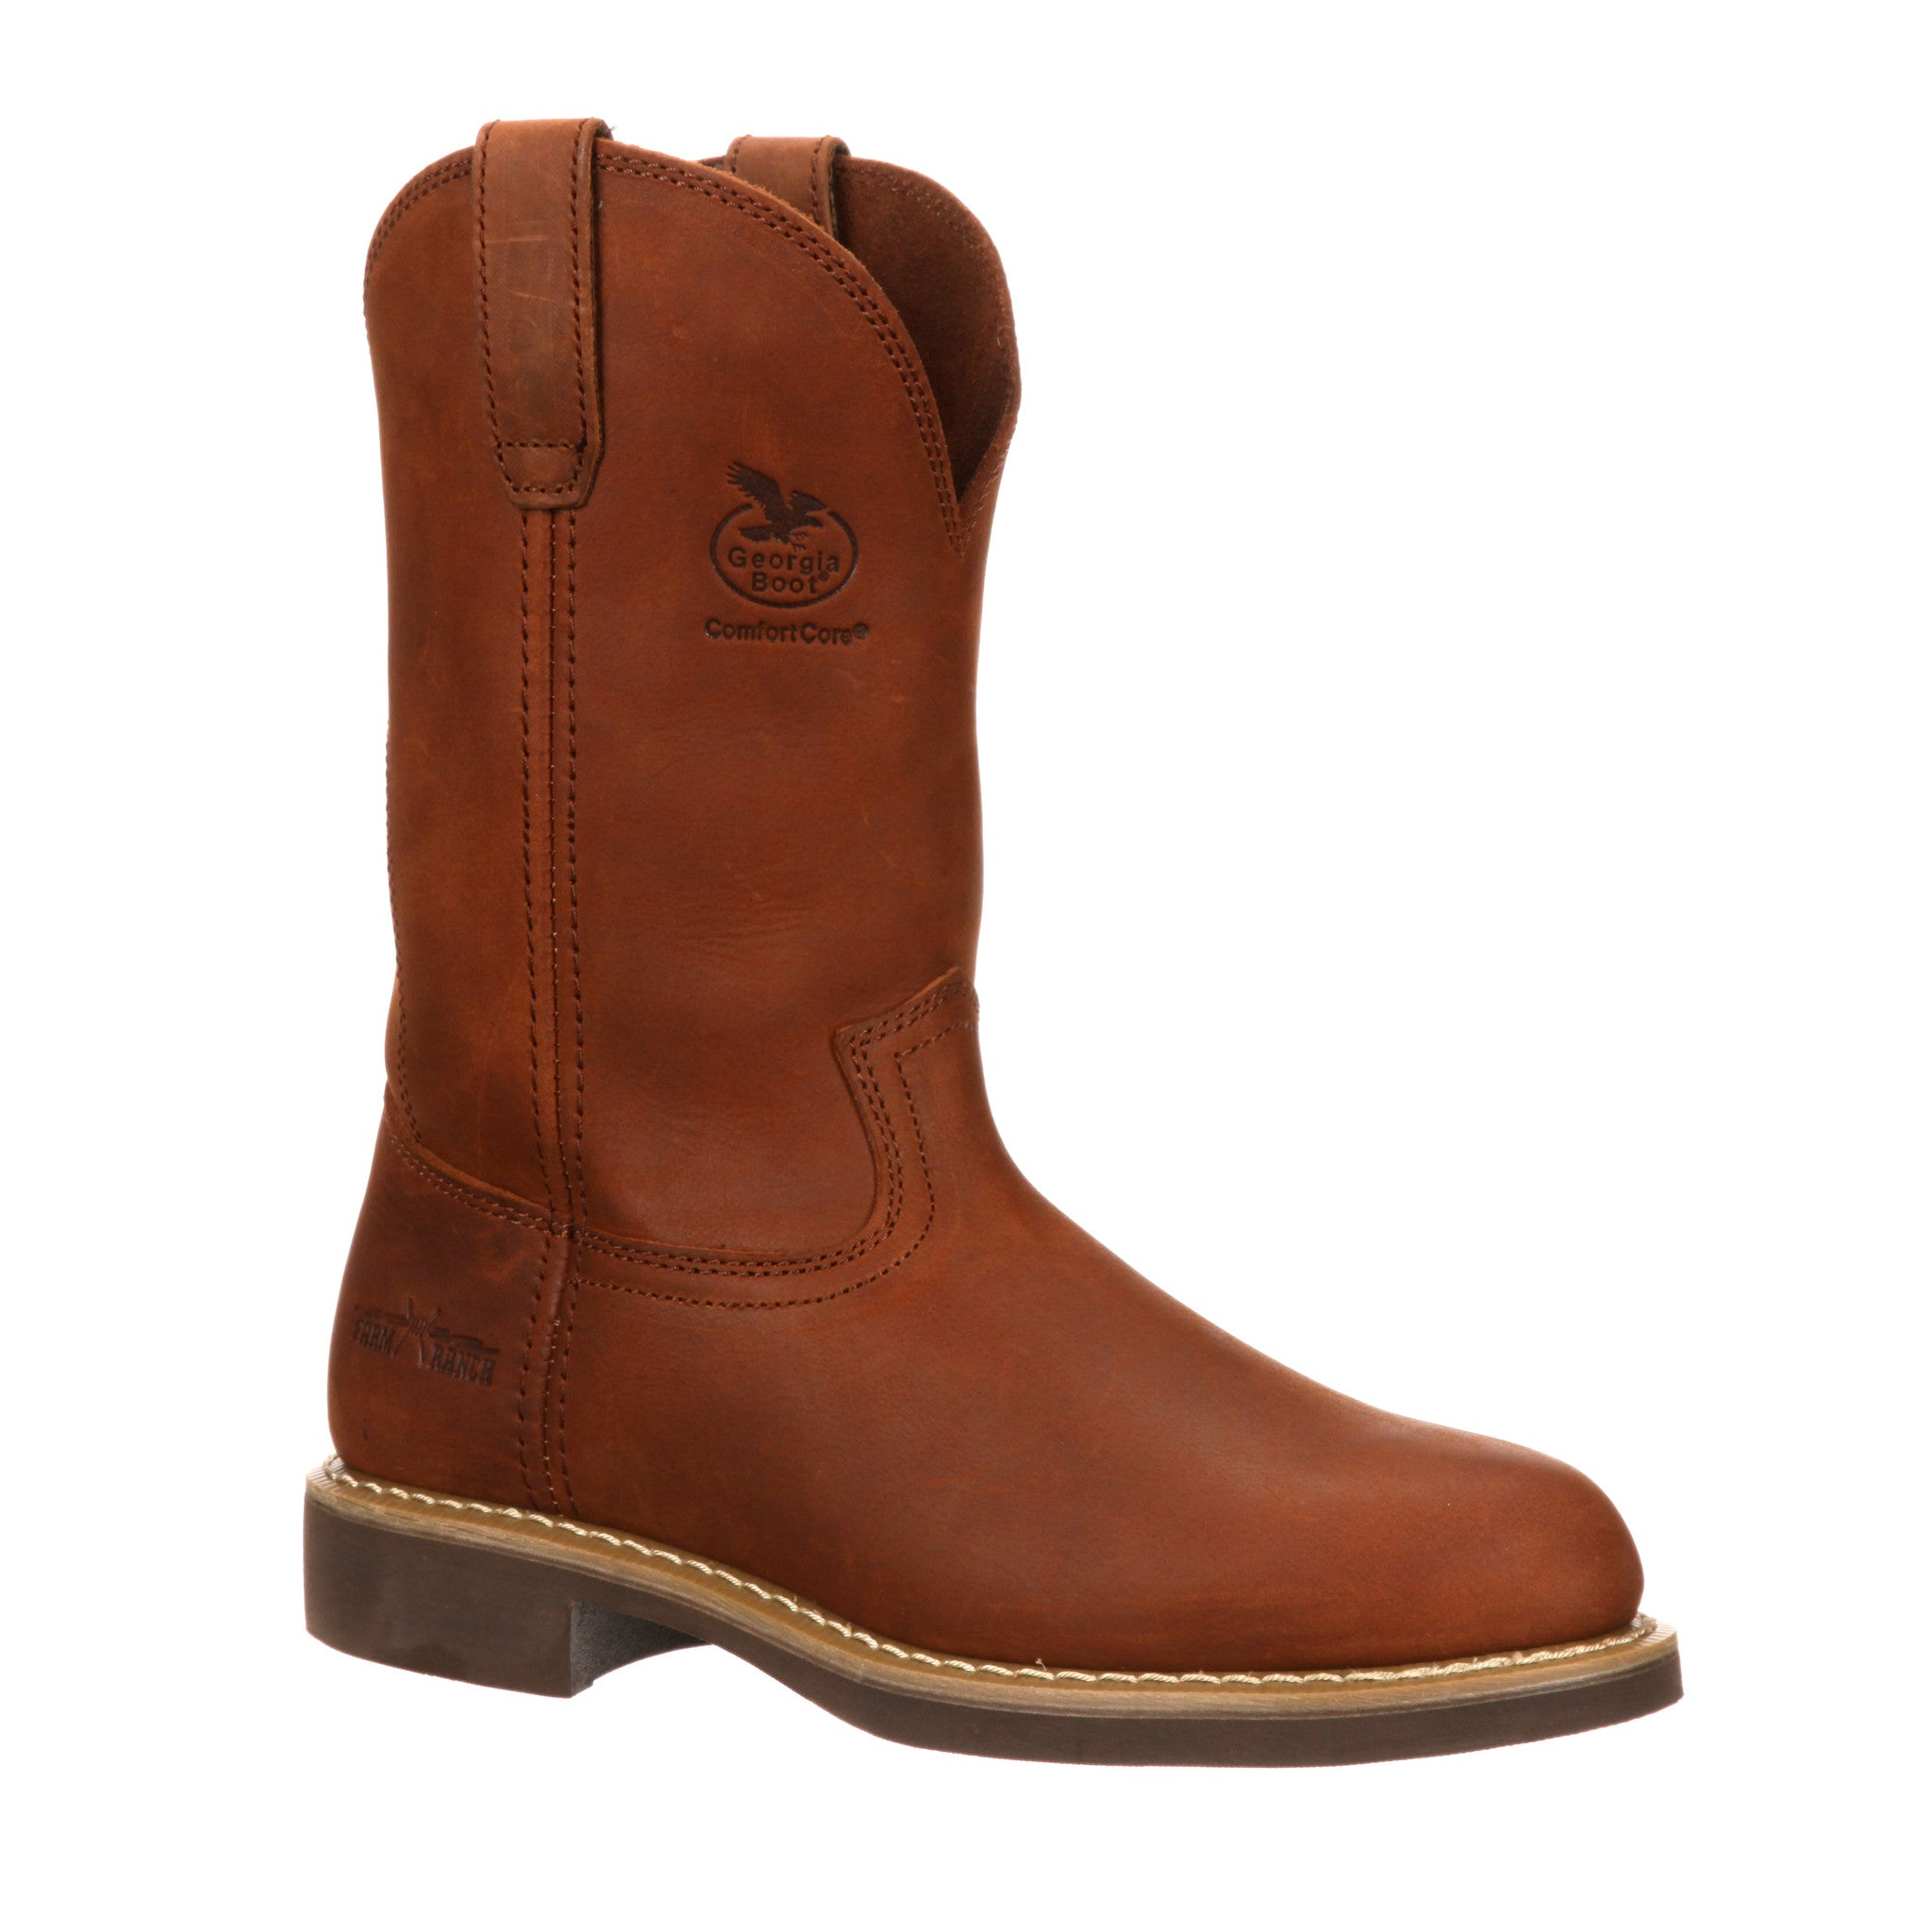 Men's Georgia Carbo-Tec Farm and Ranch Boot #G5814